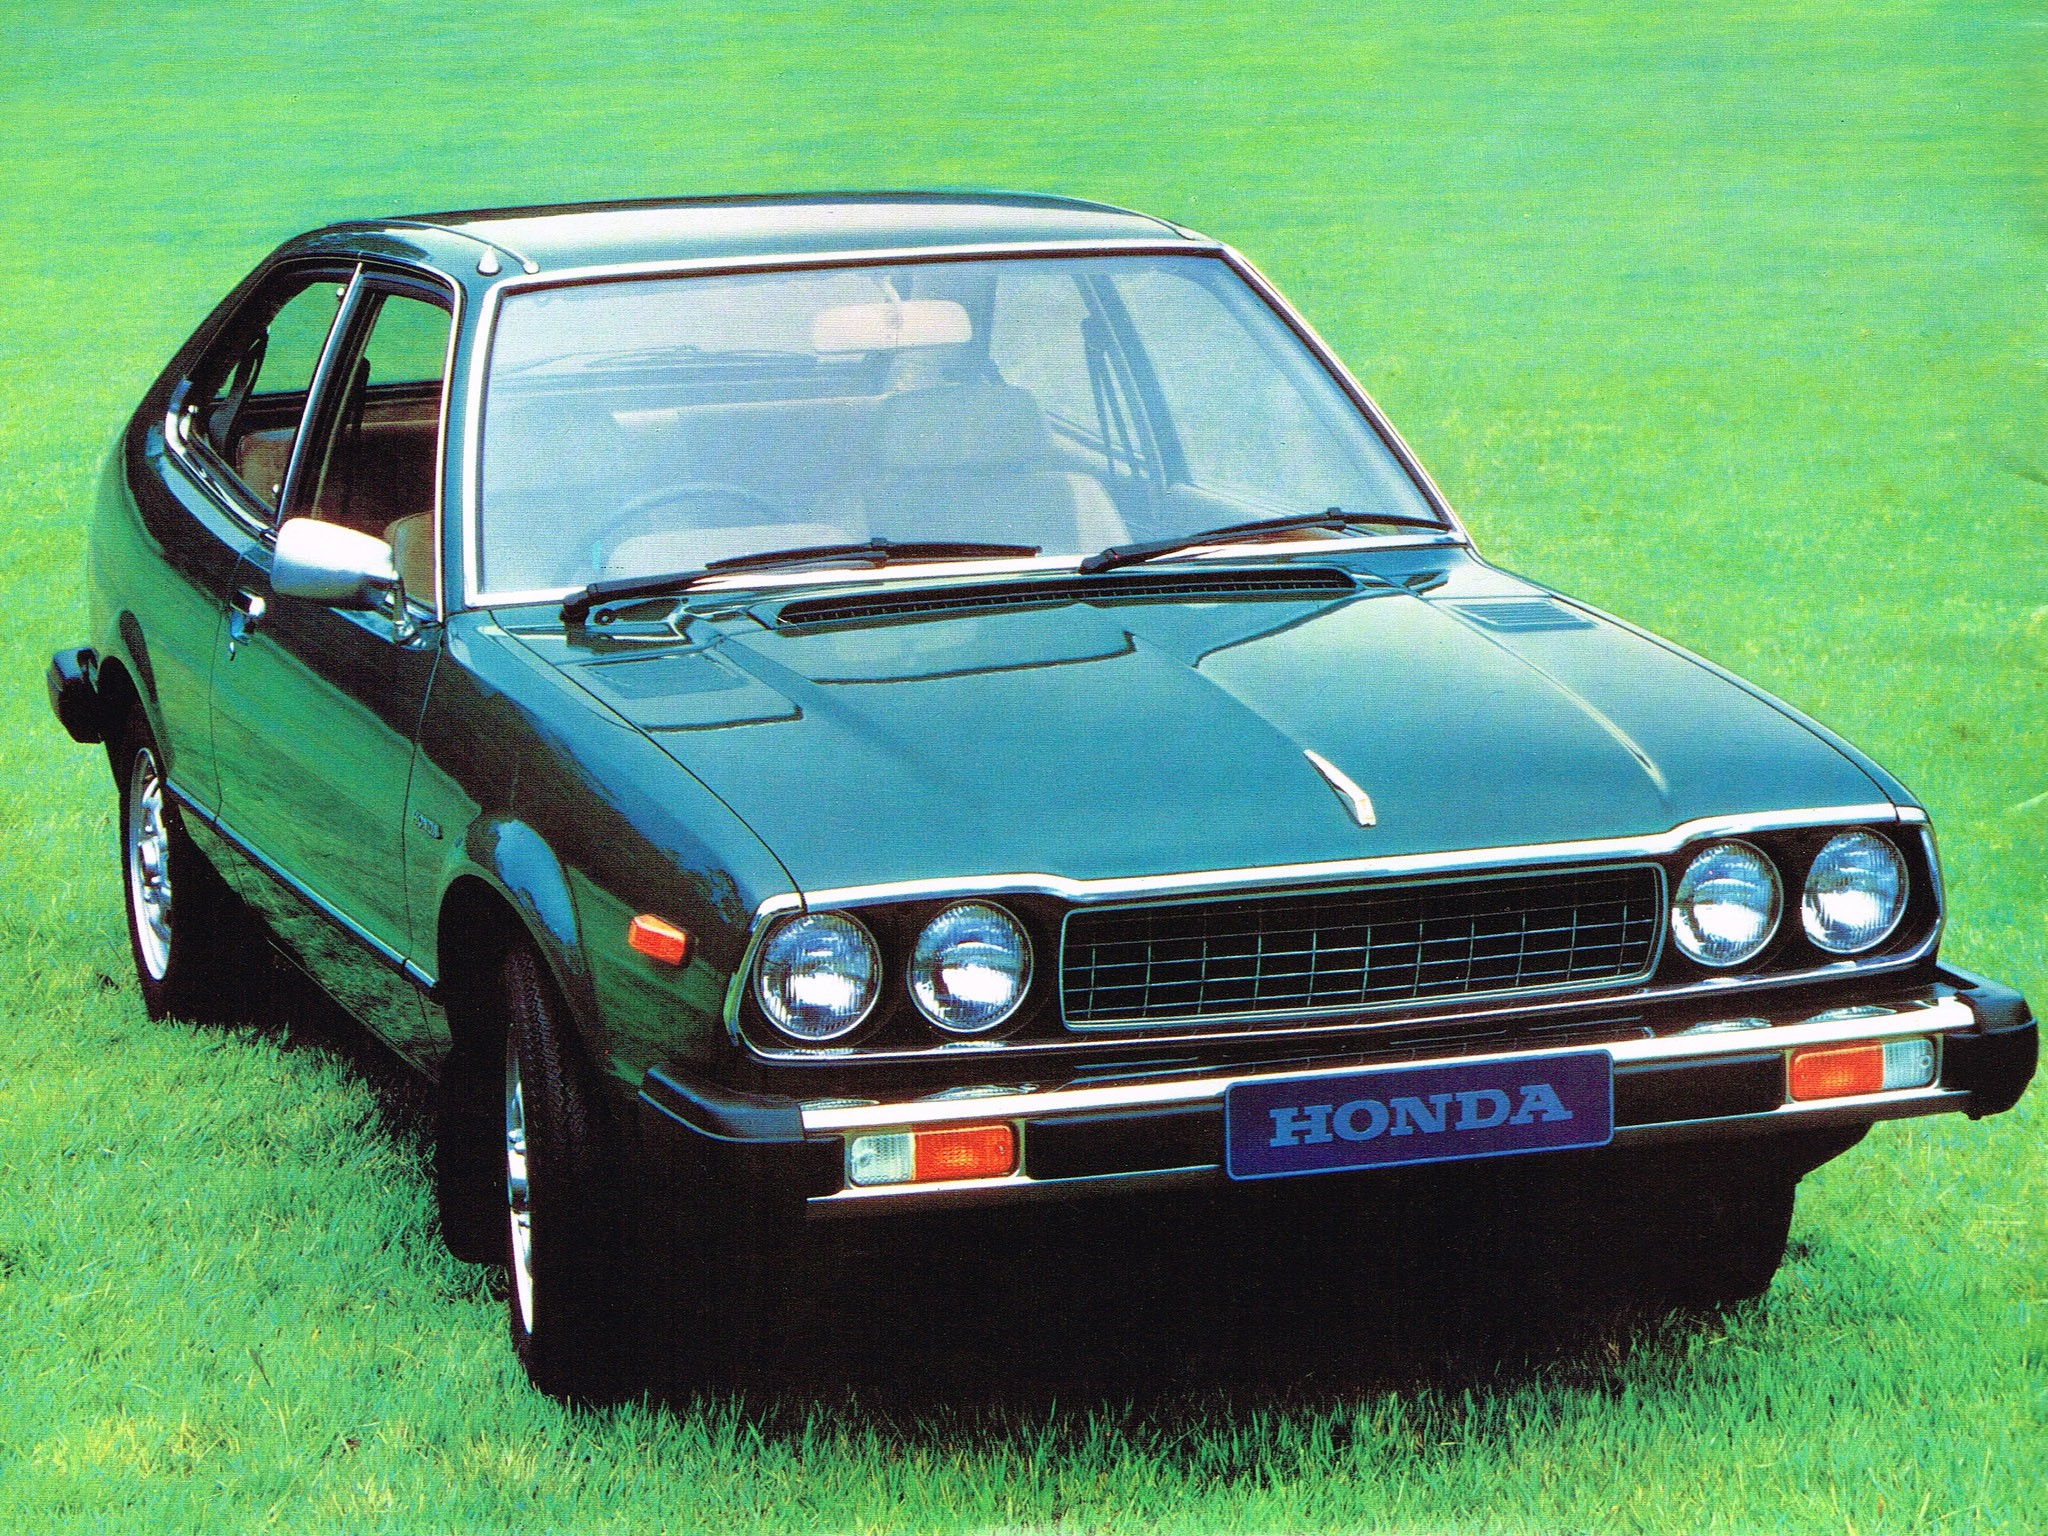 HONDA Accord 3 Doors - 1976, 1977, 1978, 1979, 1980, 1981 - autoevolution